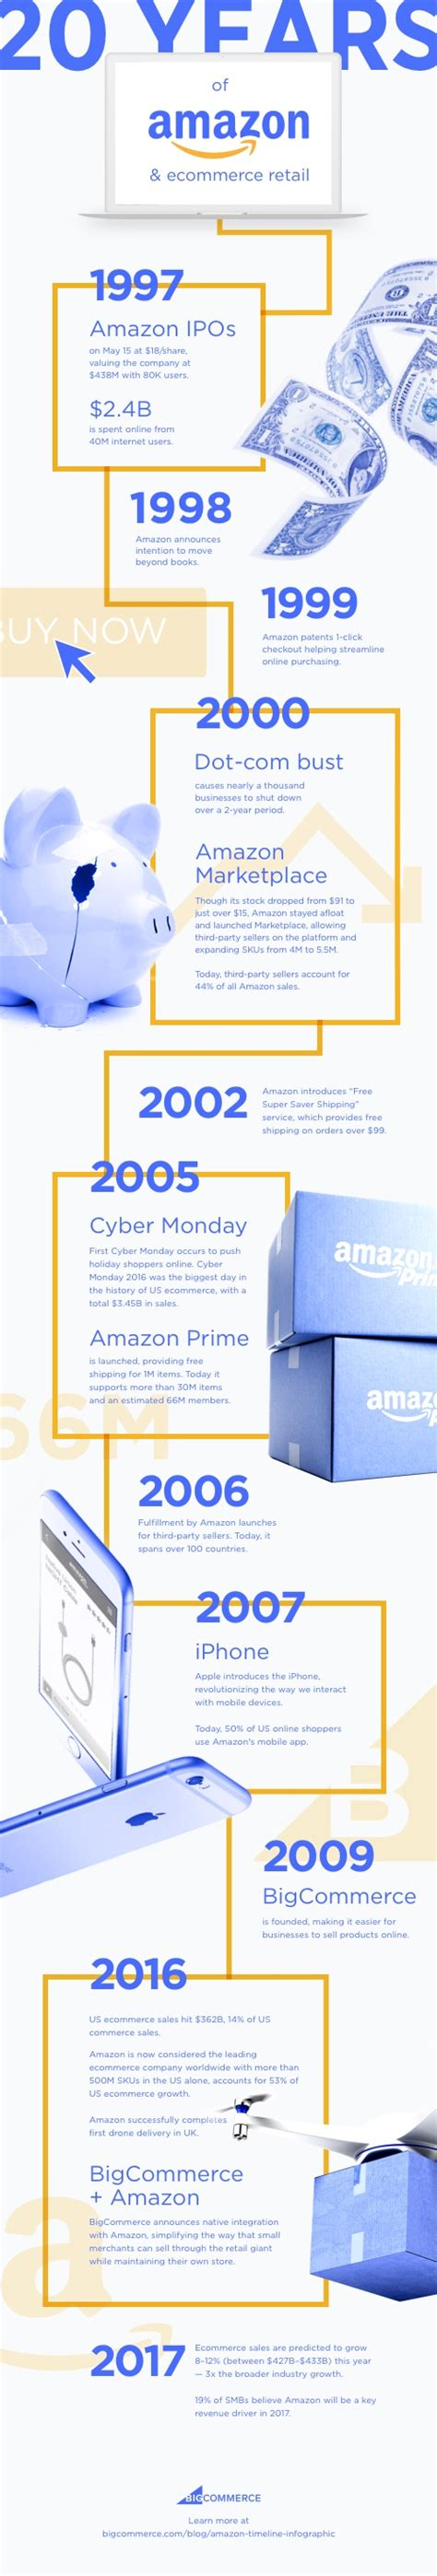 ebay amazon s quick sale through the explosive sexy dress the amazon timeline 20 years and 18k increase in sales